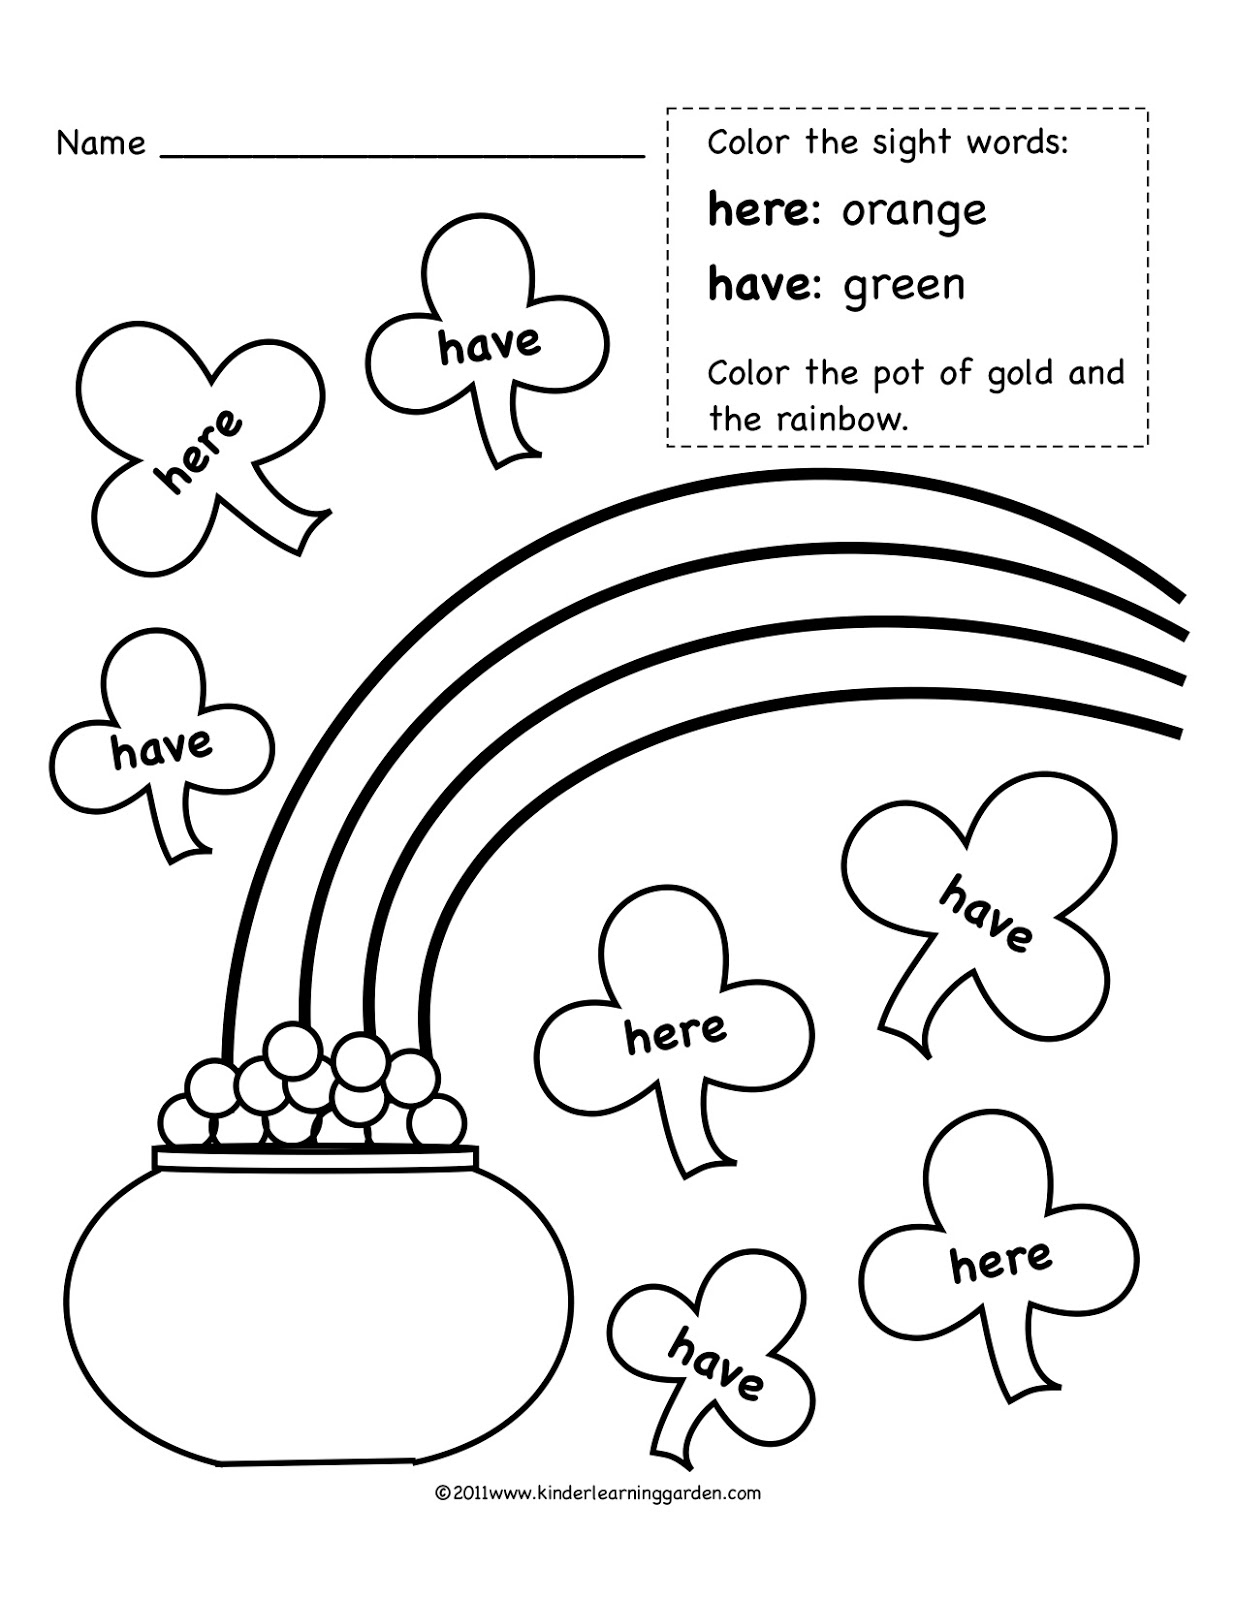 coloring words pages - photo#25